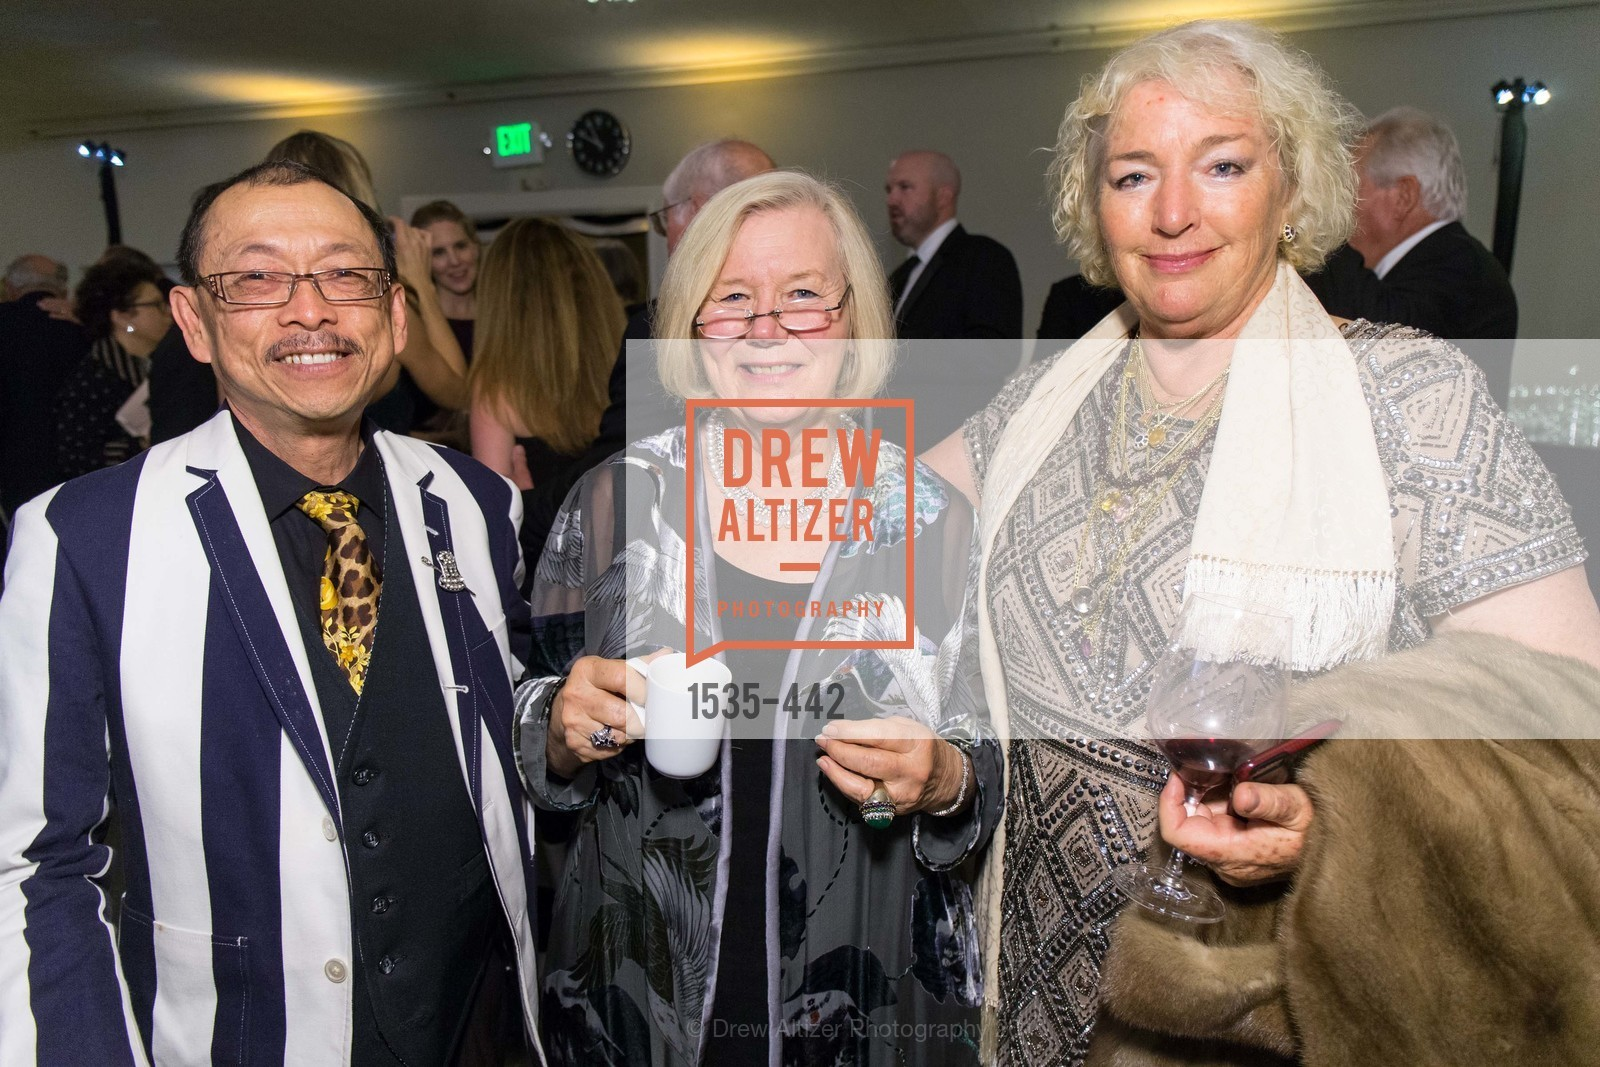 Edwin Mah, Linda Hannawalt, Marky Lynn Quayle, Metropolitan Club Presents THE CENTENNIAL GALA, Metropolitan Club. 640 Sutter Street, November 5th, 2015,Drew Altizer, Drew Altizer Photography, full-service agency, private events, San Francisco photographer, photographer california